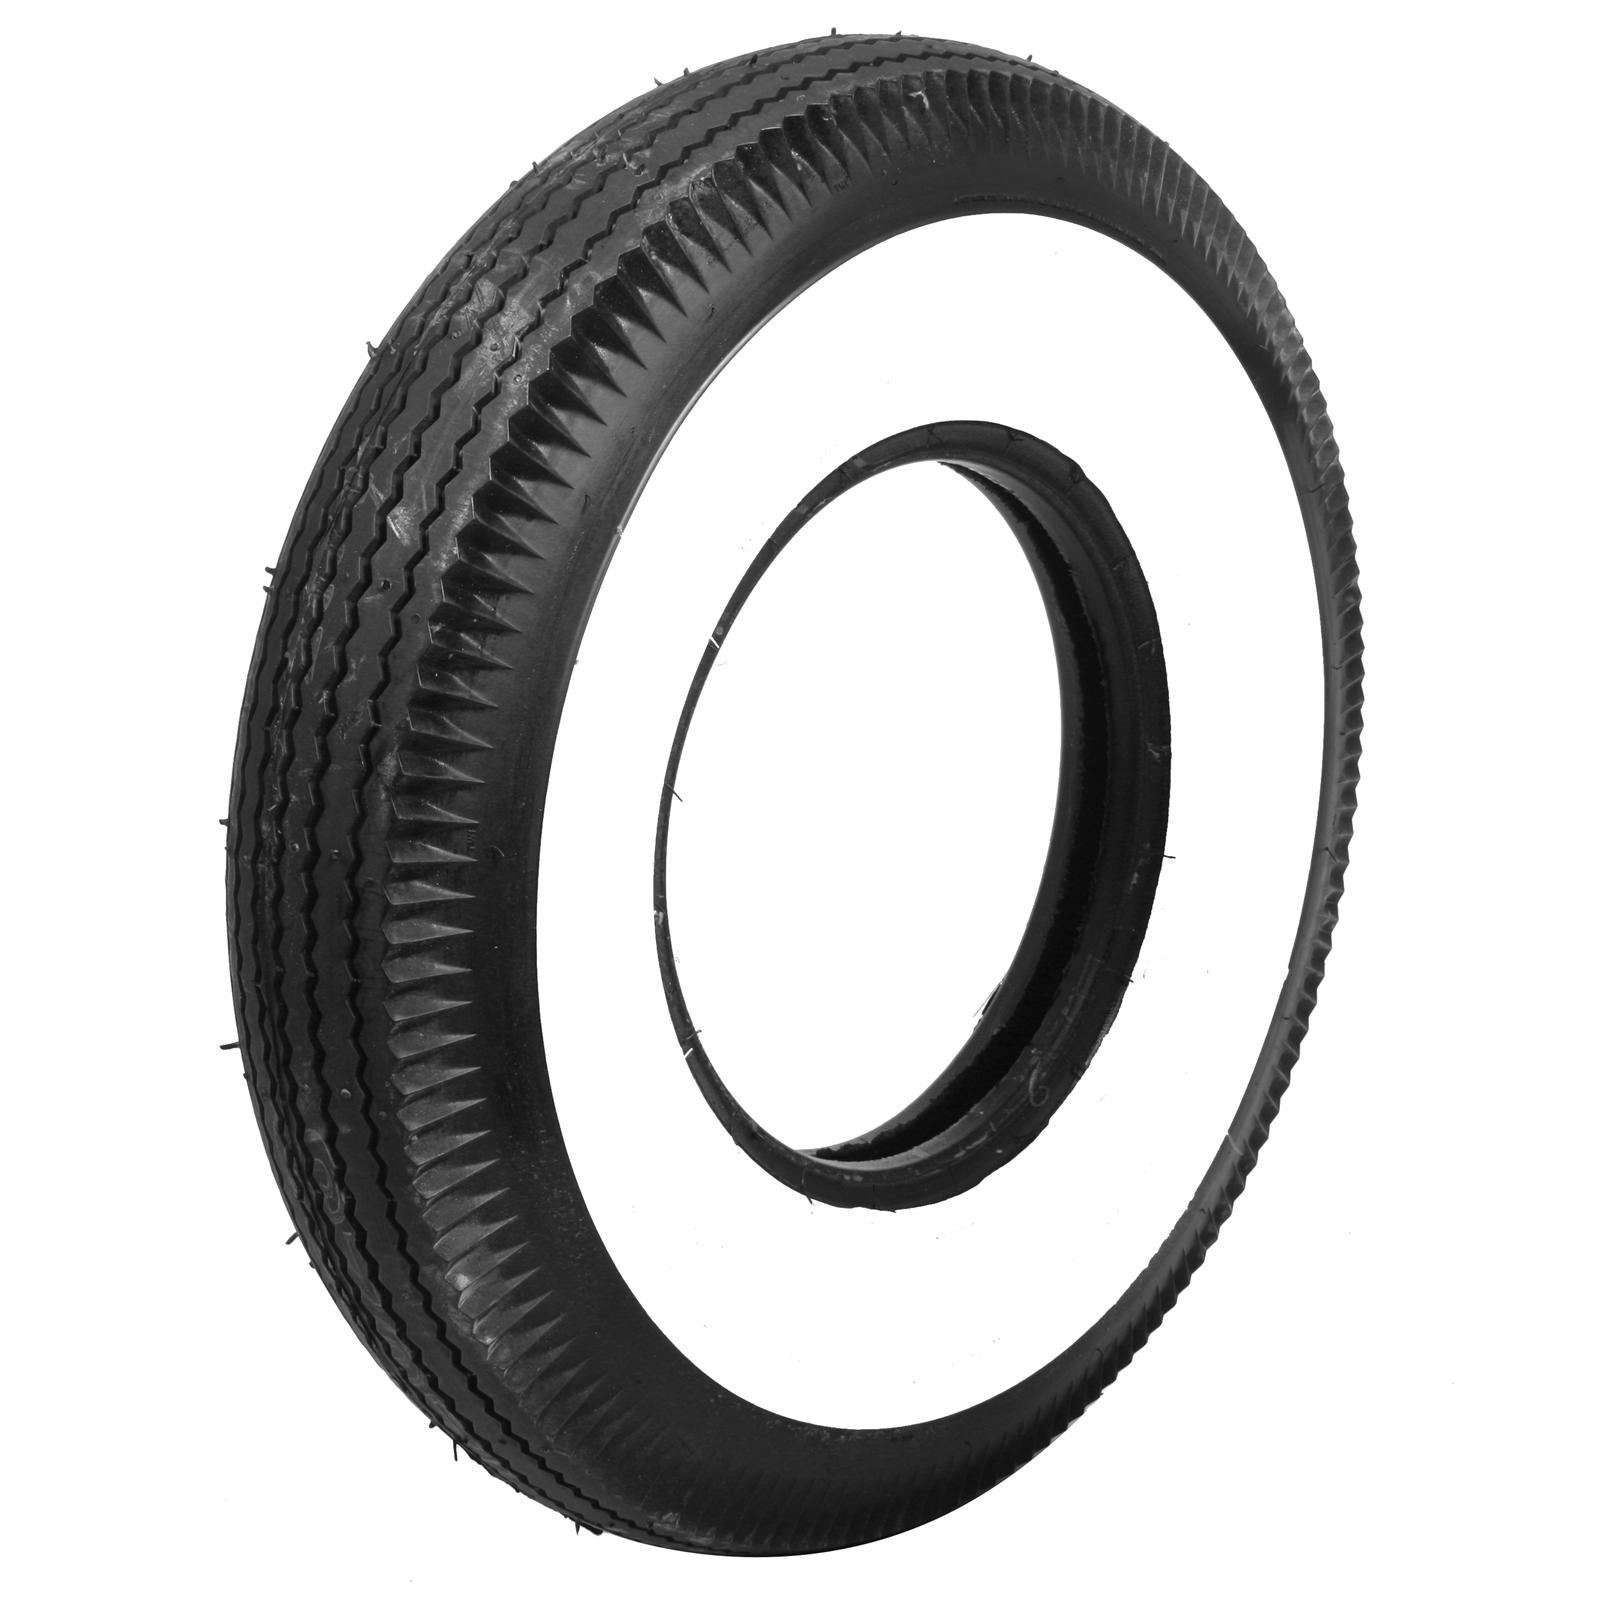 firestone and ford the tire tread Firestone agriculture is known for innovations in tire technology, tire  management and tools explore our complete offering of agricultural tires, tractor  tires and.